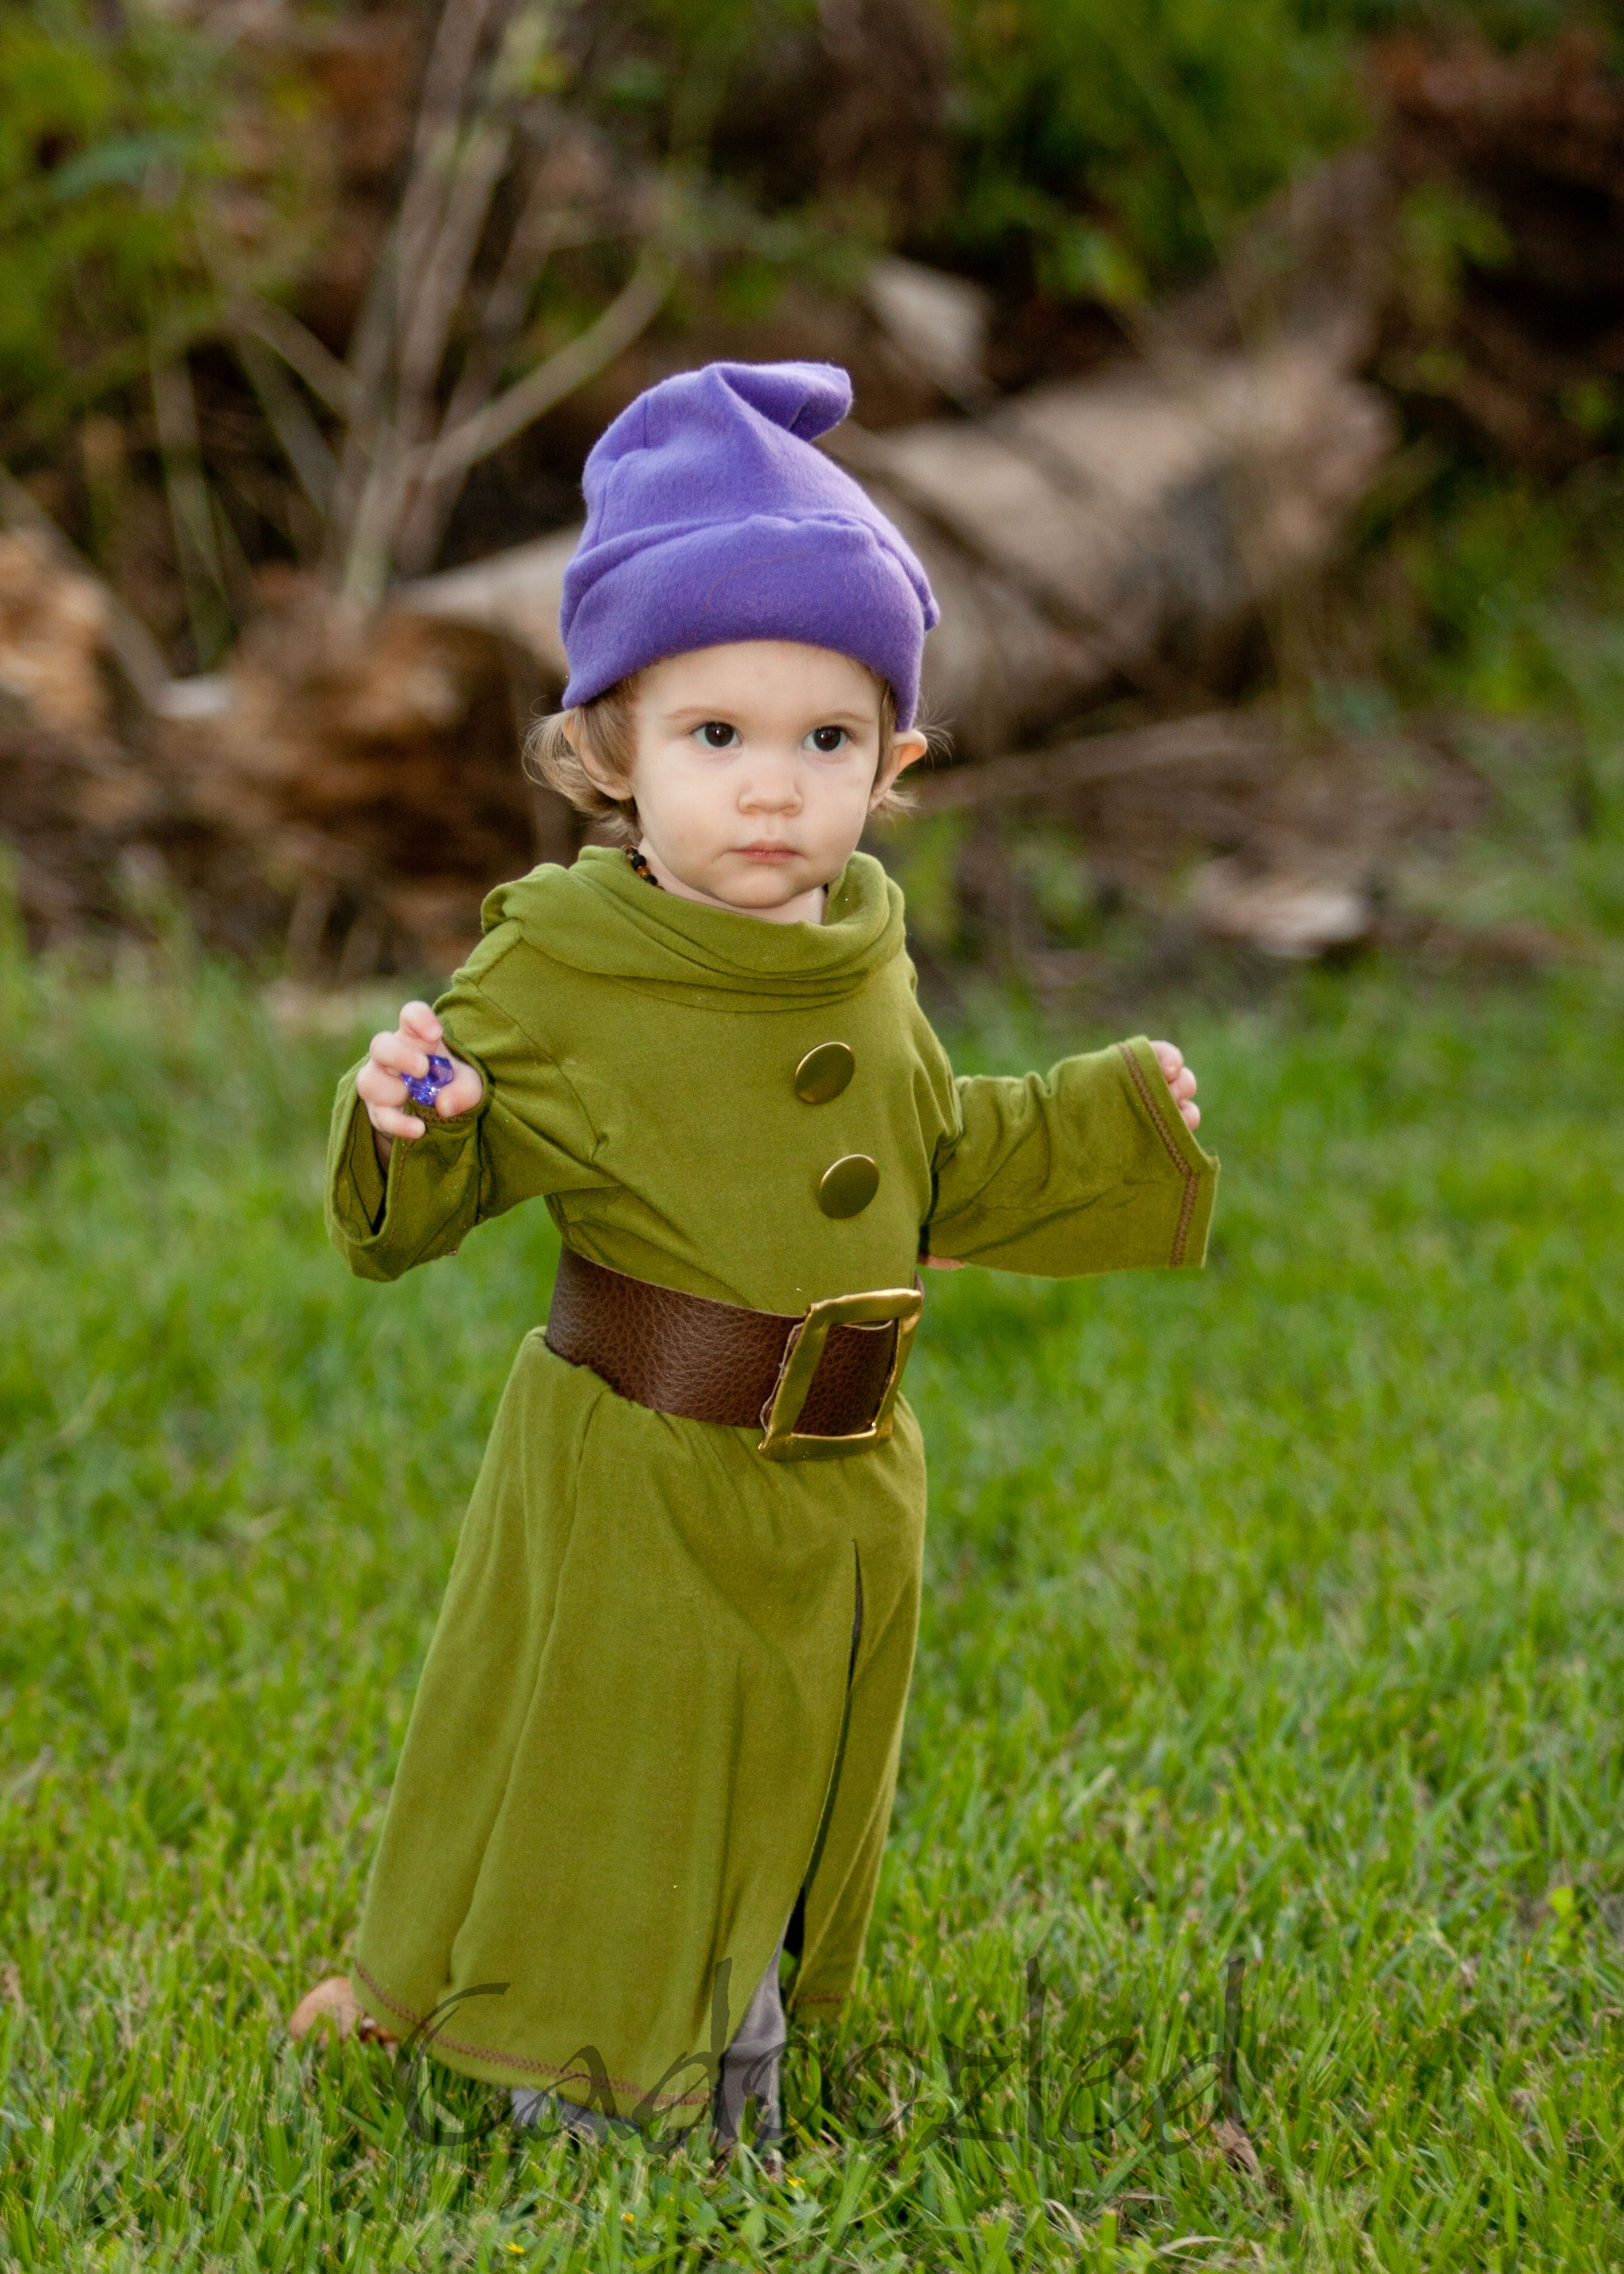 Adorable baby Dopey Halloween Costume! Made by Cadoozled